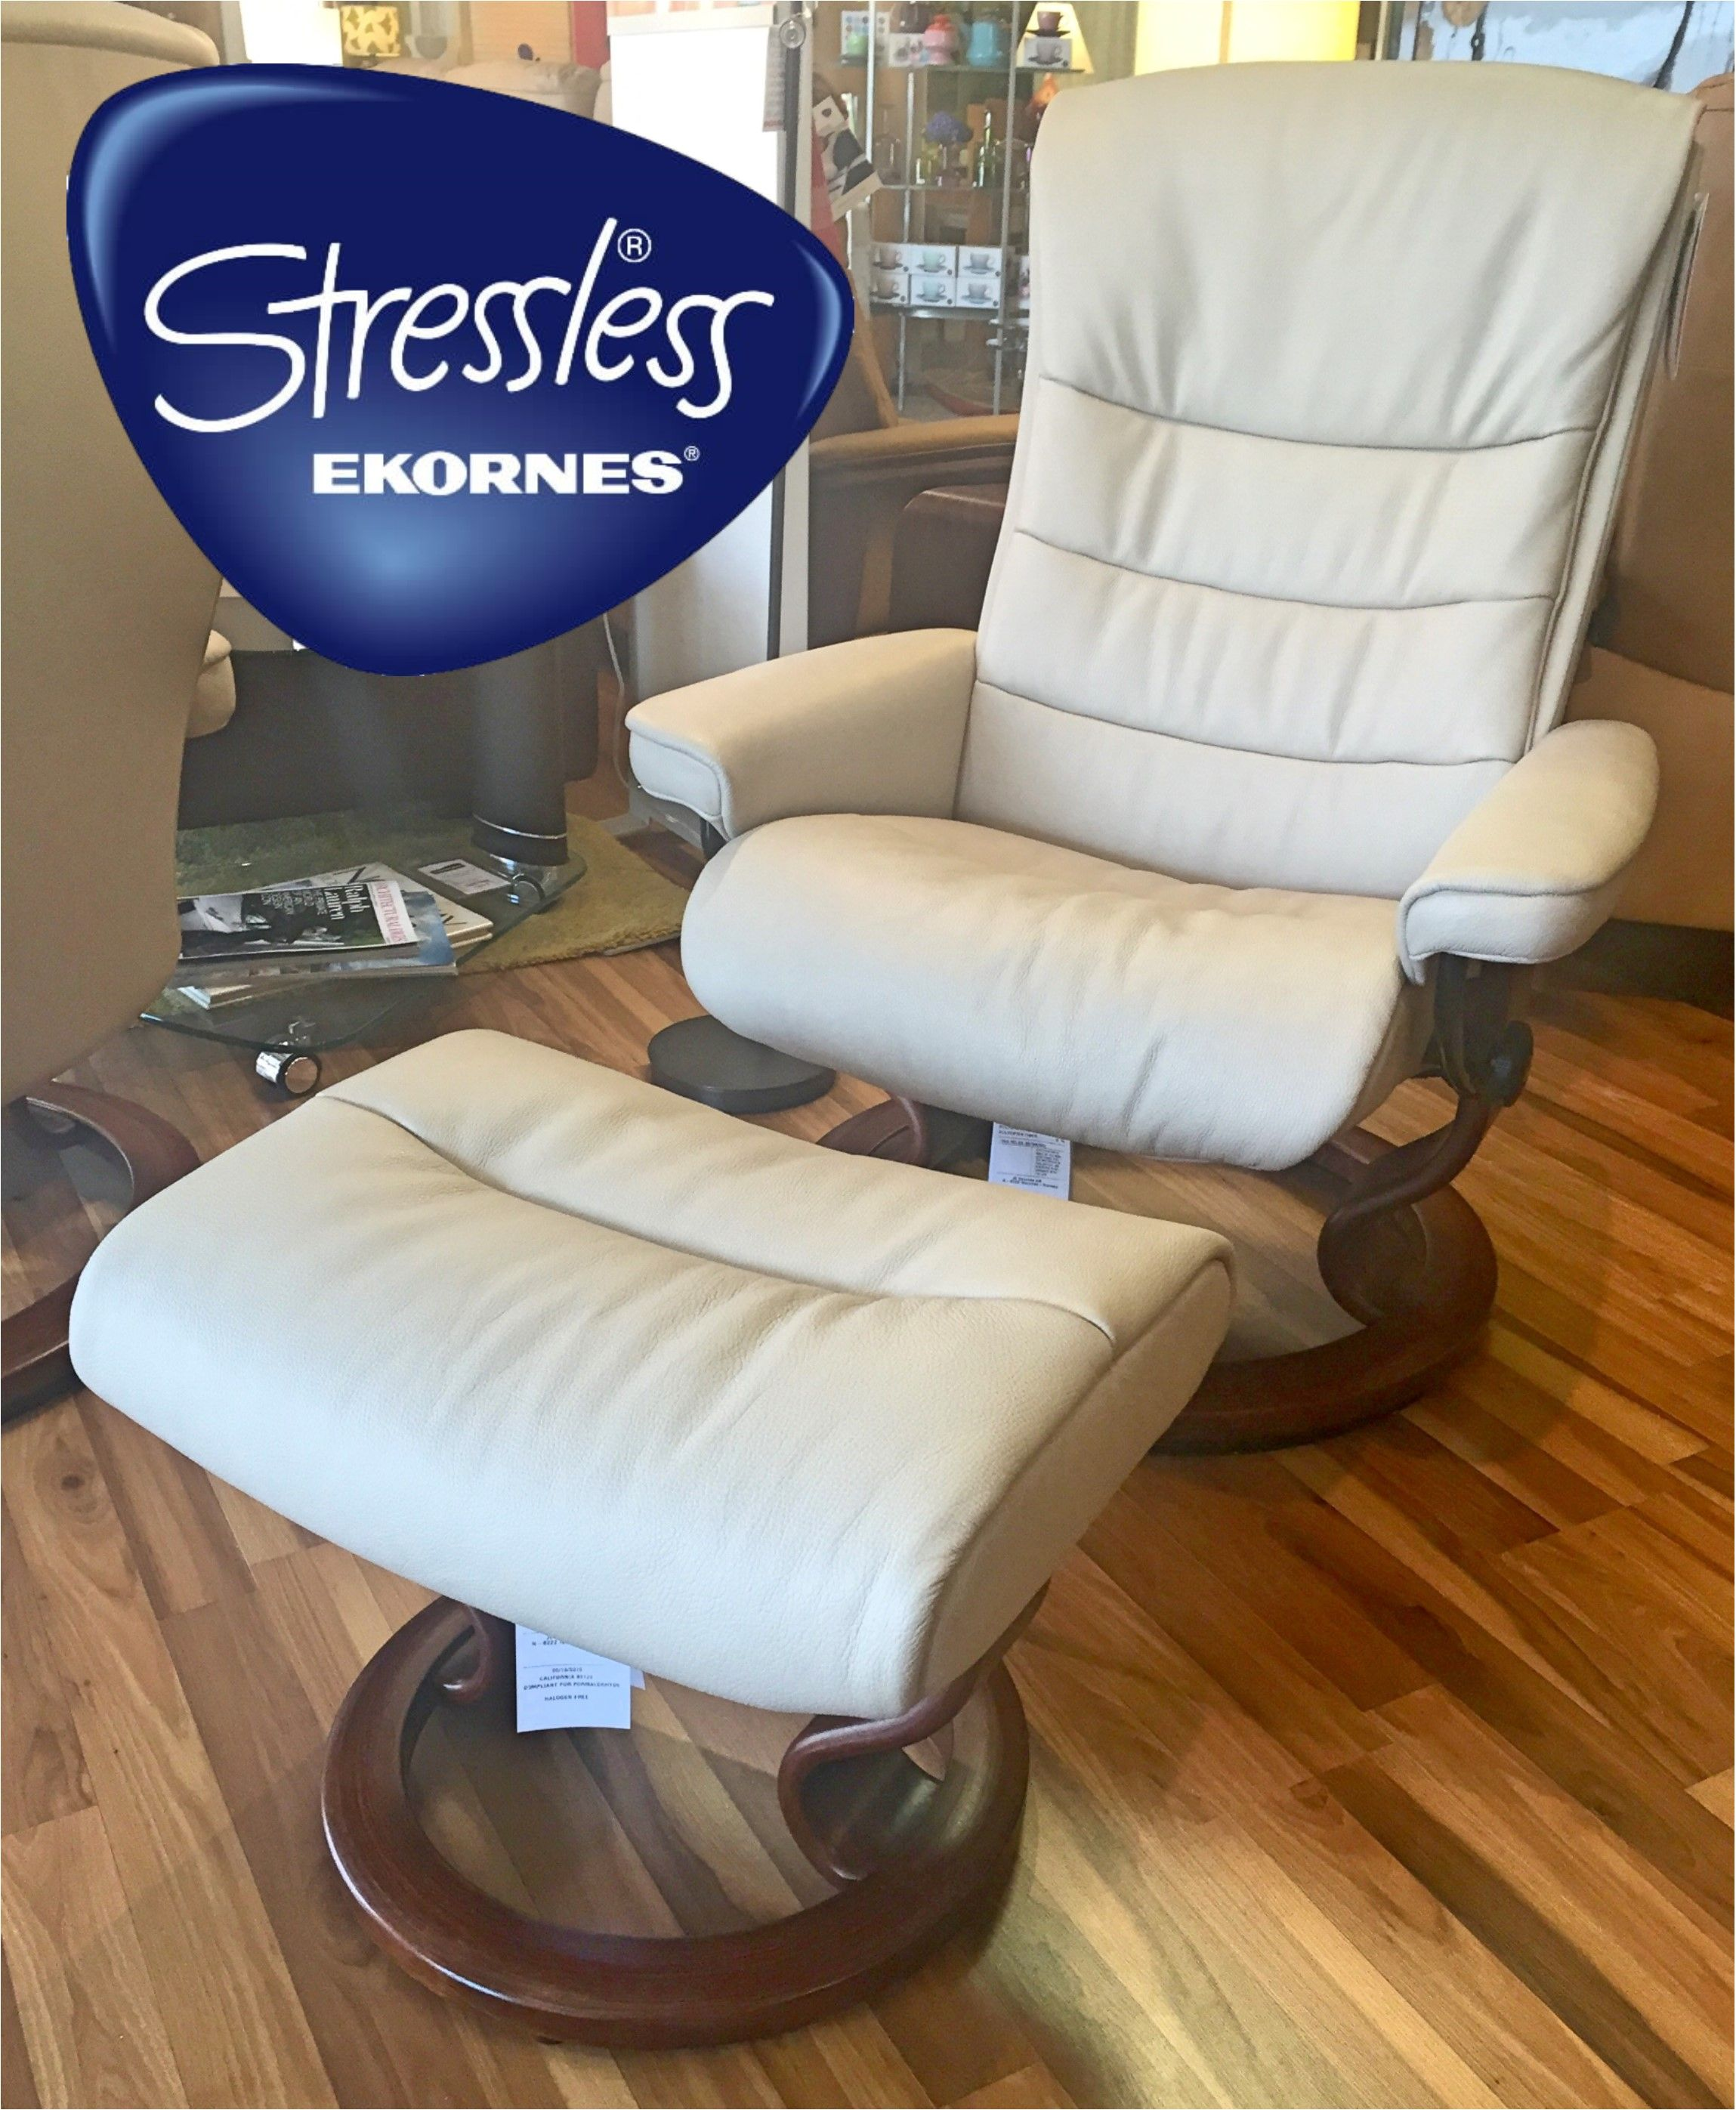 Stressless Nordic Legcomfort Nordic Recliner In Cori Fog With Walnut Base Available At Scanhome